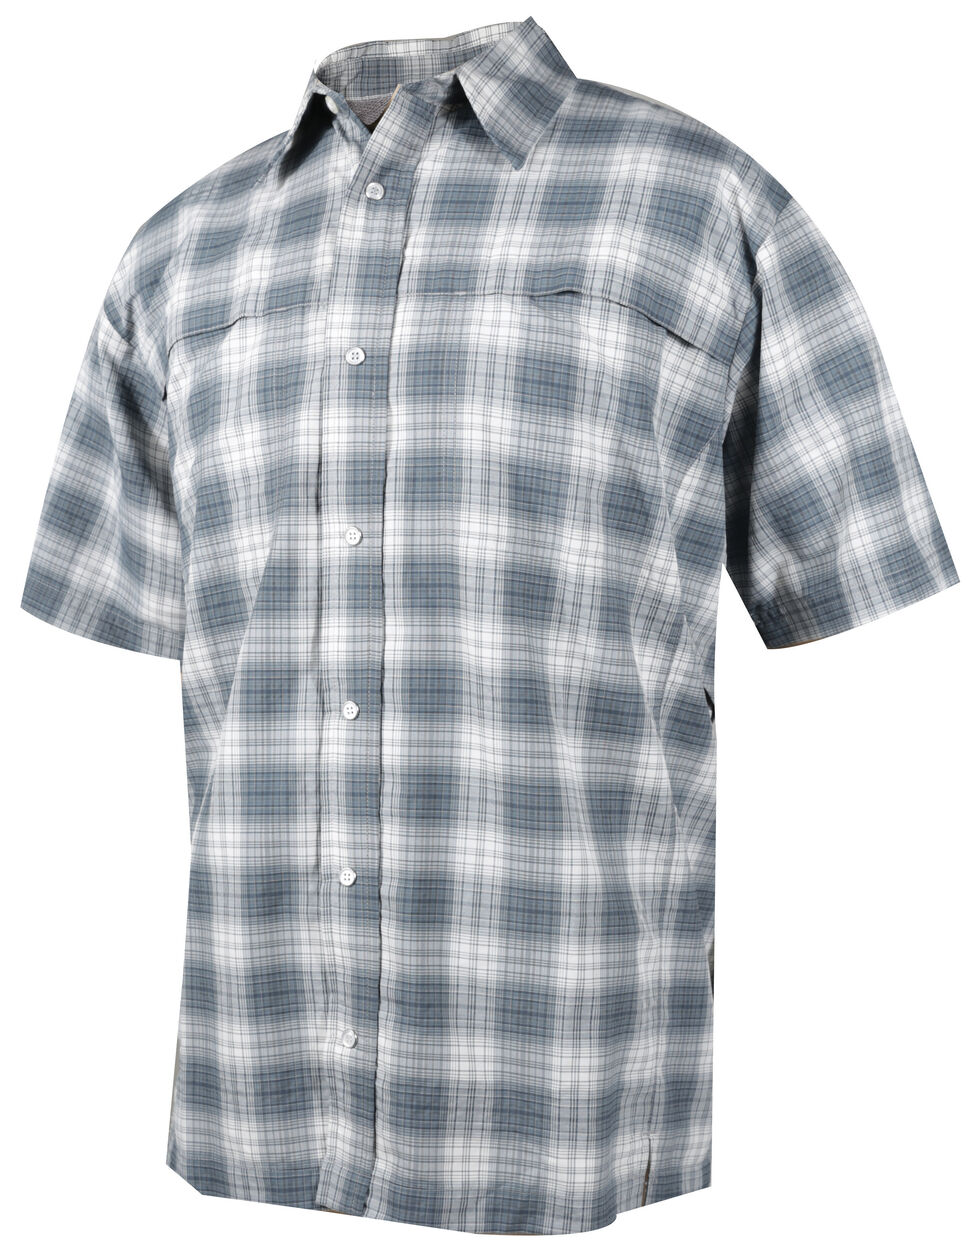 Tru-Spec Men's Grey Plaid 24-7 Cool Camp Shirt , Grey, hi-res